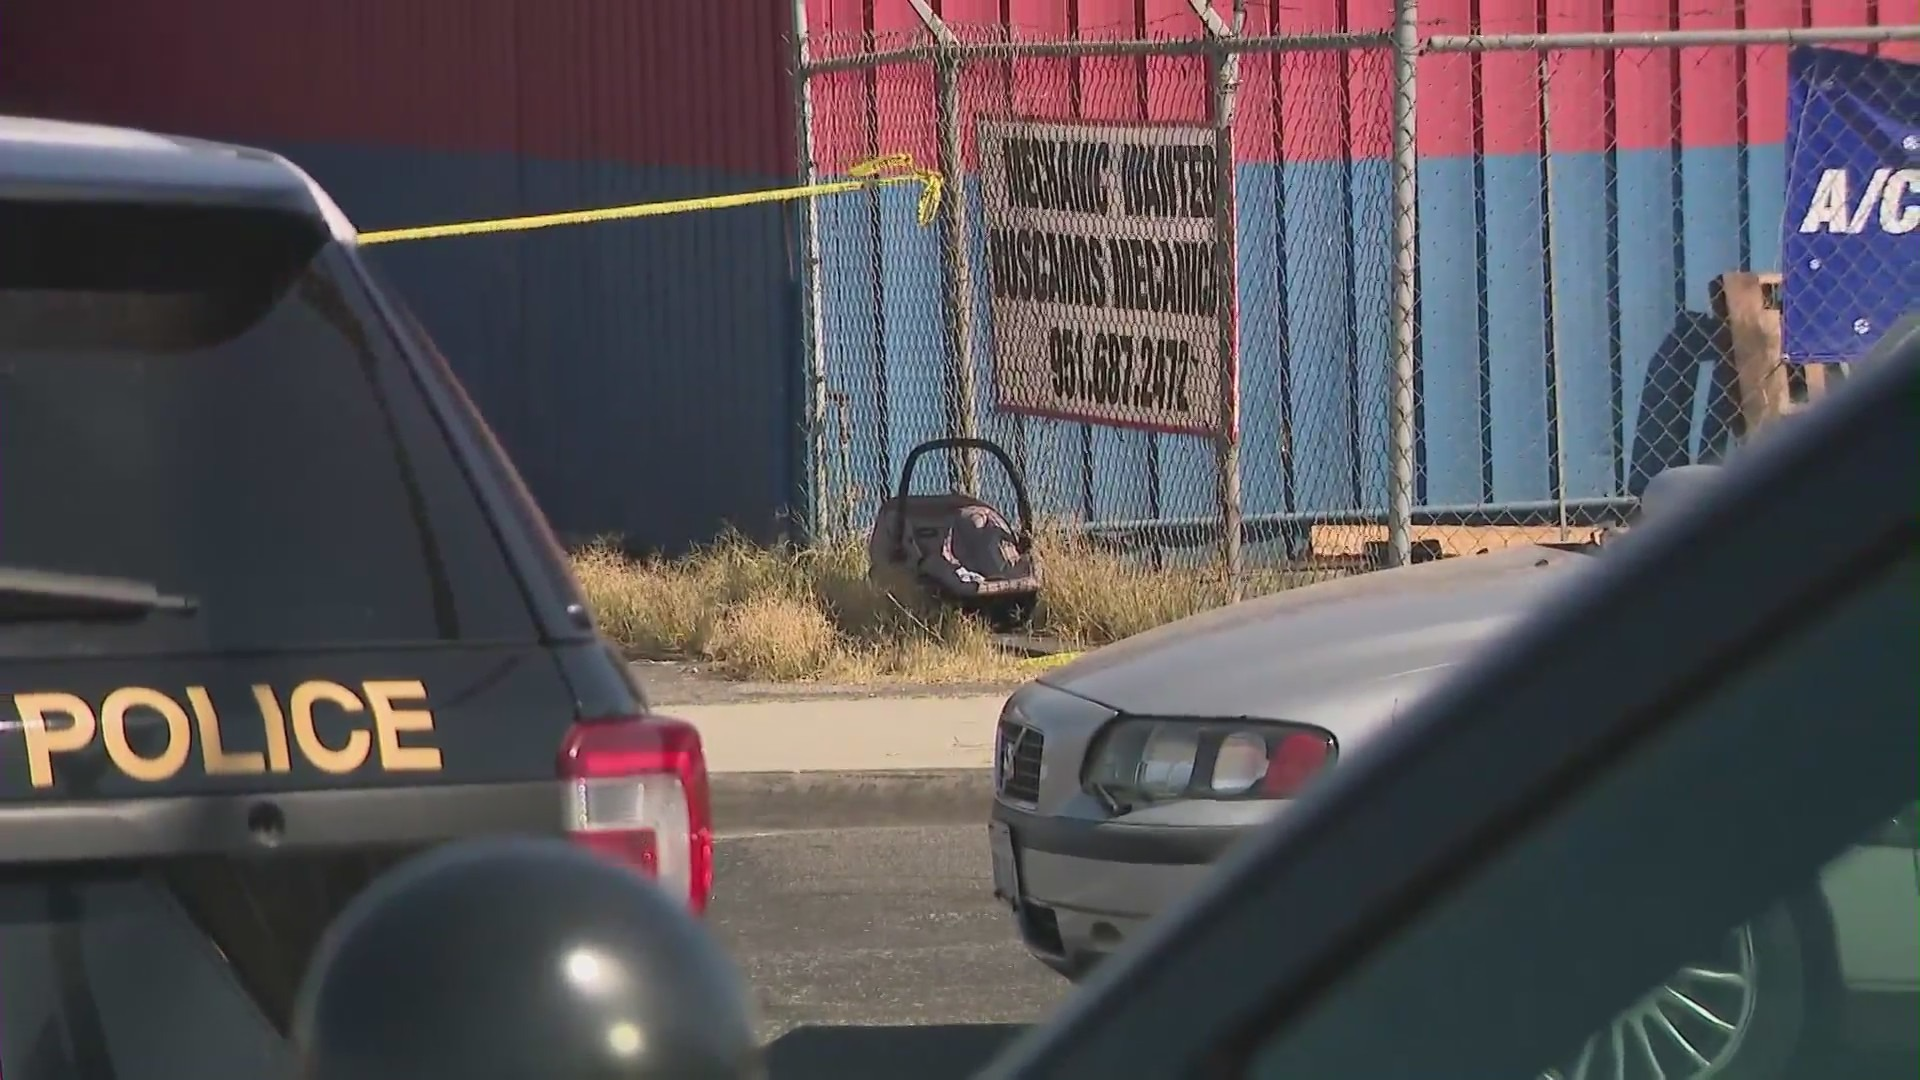 A man was shot and killed with a baby in the car with him on Sept. 19, 2021. (KTLA)